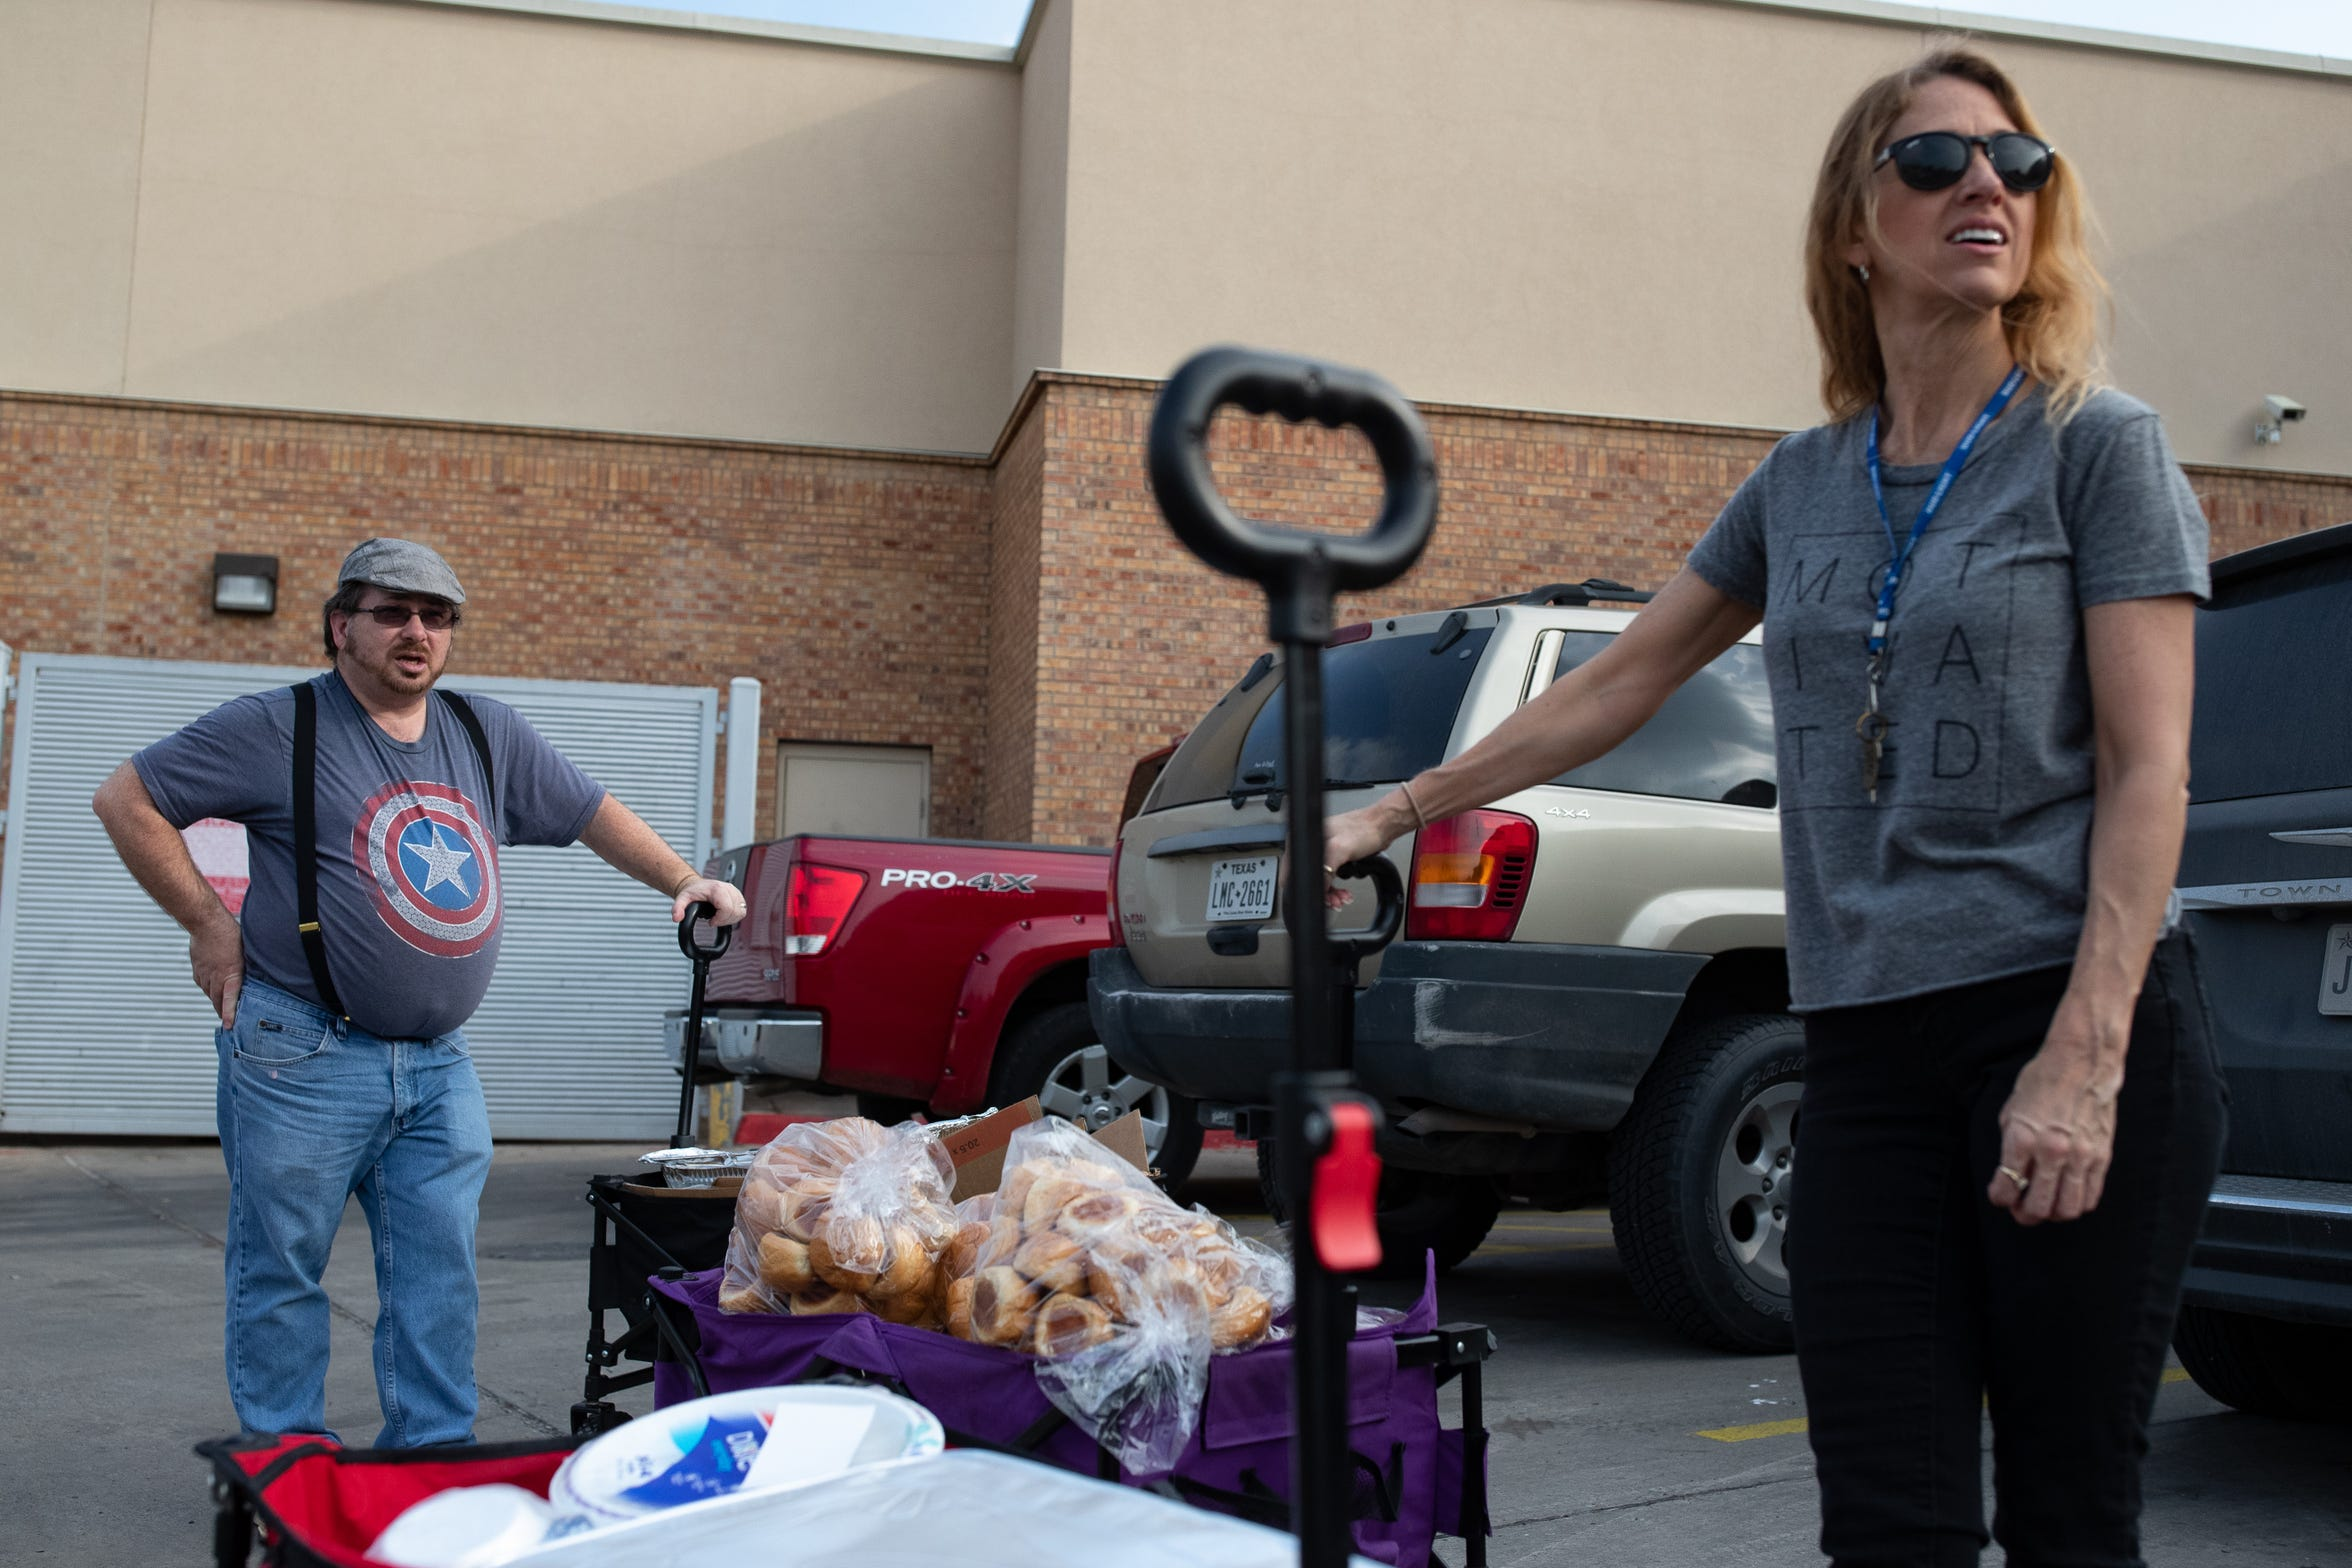 Volunteers Emmett Blake and Diane Beckman of Austin, stand outside the Brownsville bus station with carts full of food before Team Brownsville's dinner and supply run over the Gateway International Bridge to help migrants waiting to seek asylum camped out in Matamoros, Mexico on Thursday, April 4, 2019.